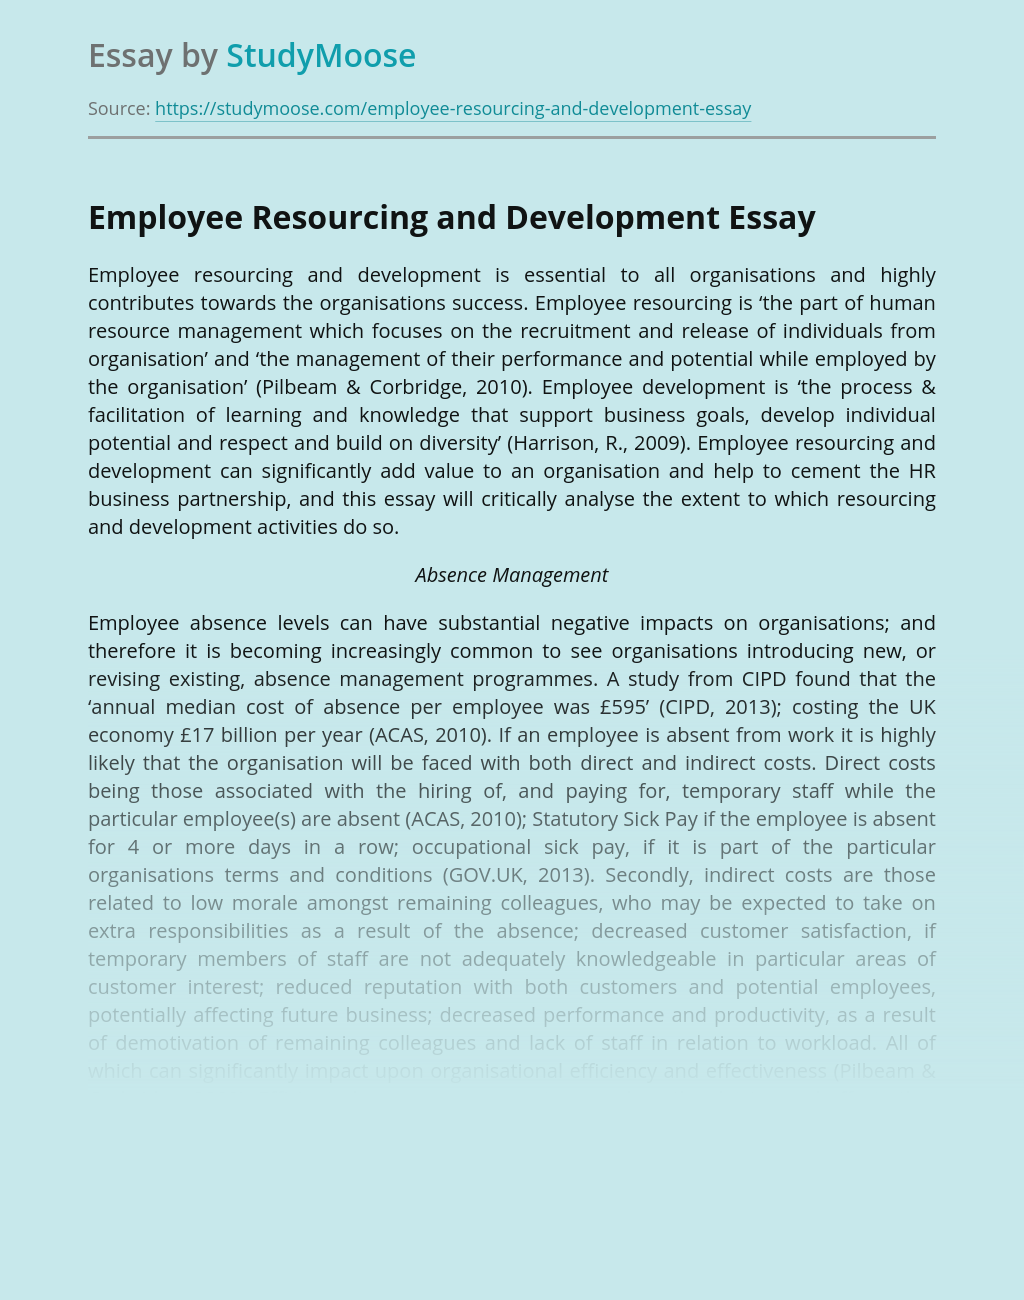 Employee Resourcing and Development